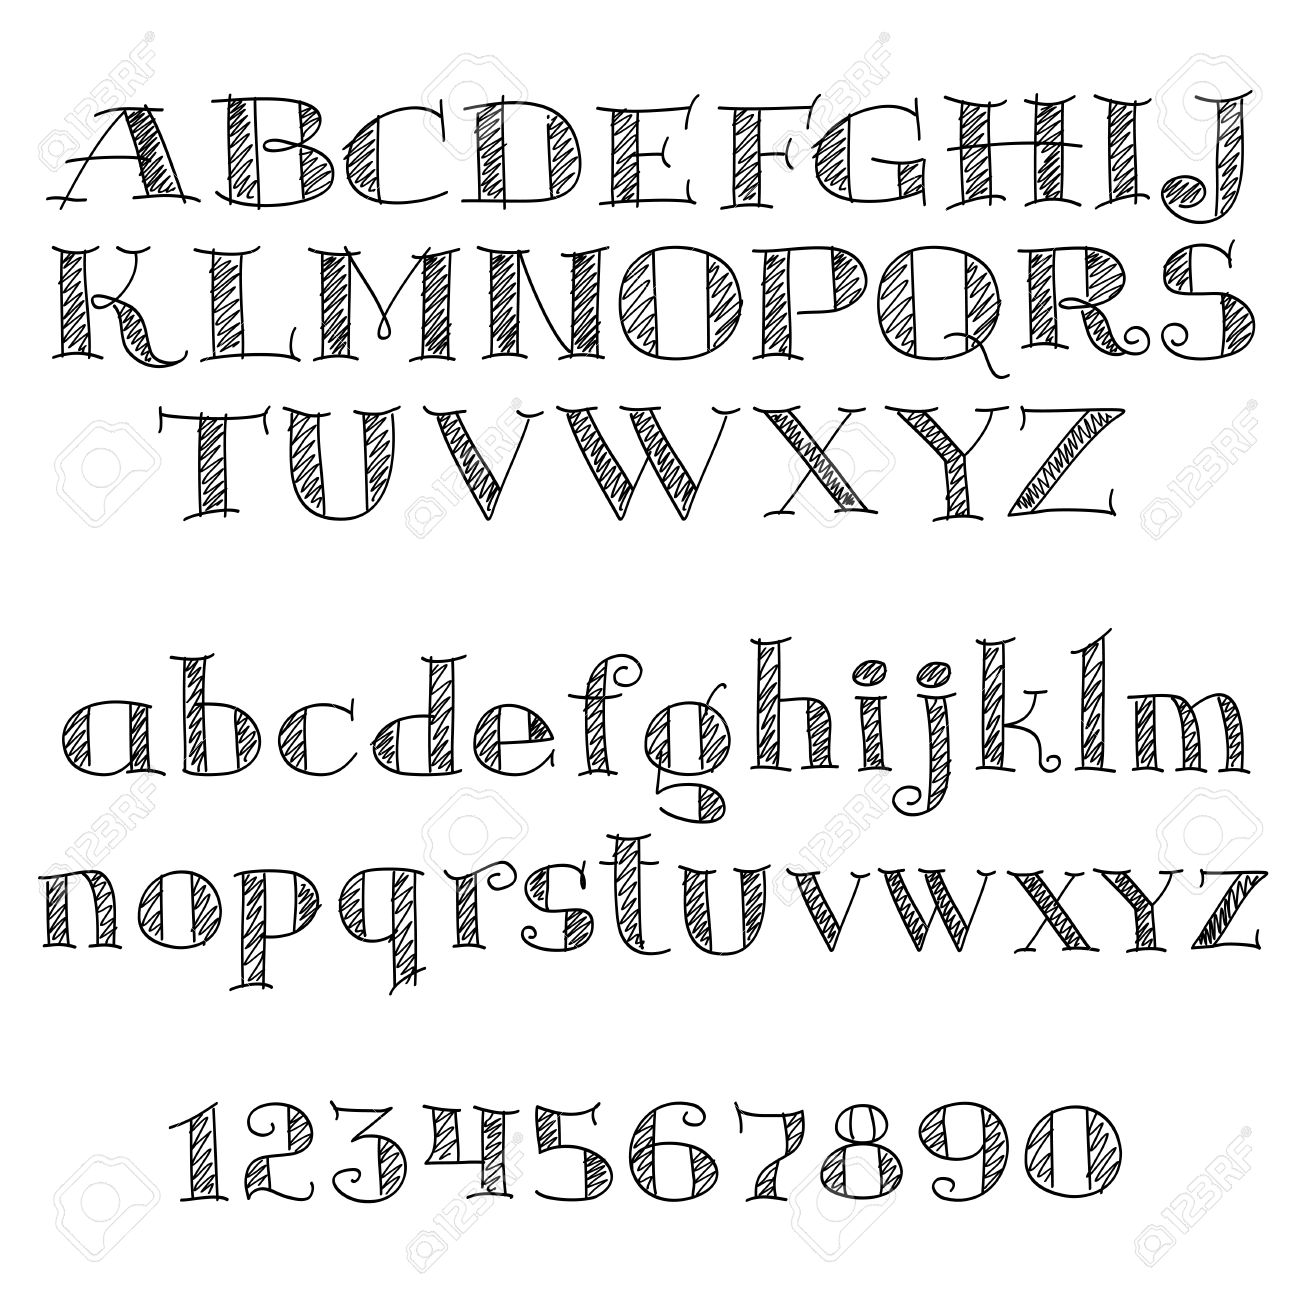 Alphabet Letters Font With Decorative CrossHatched Letters And